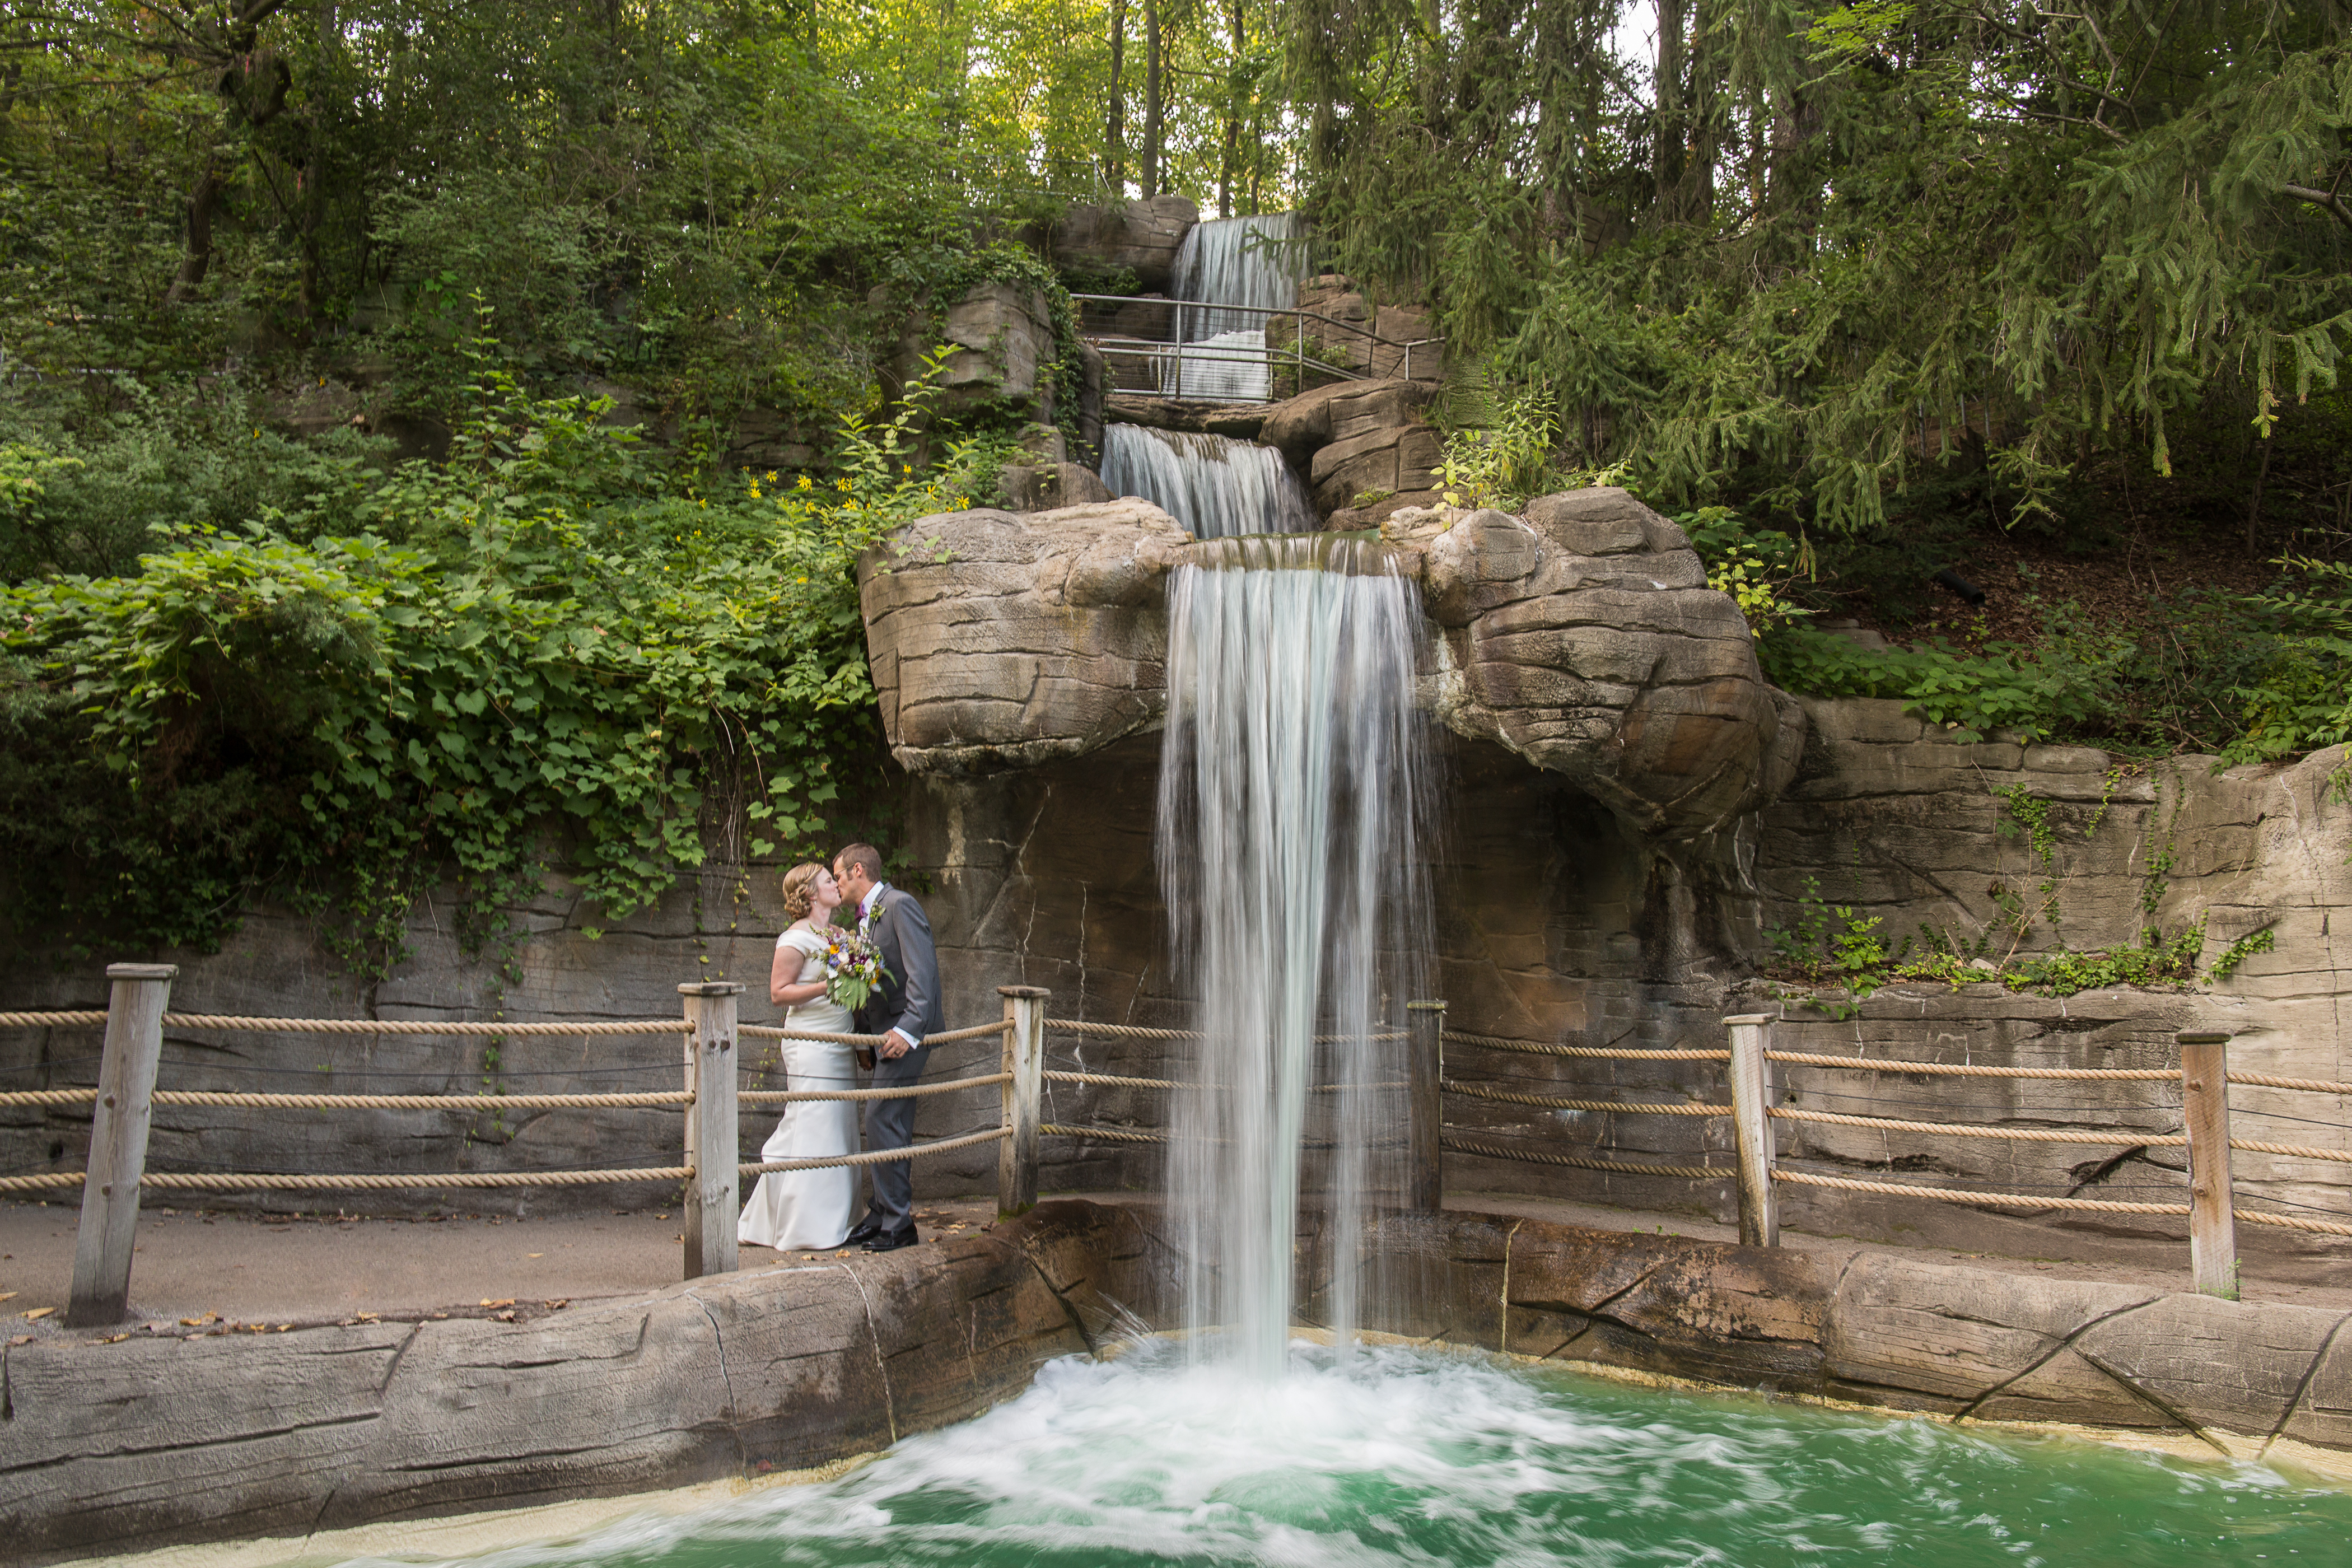 Elise & Chris stand under a waterfall on their wedding day